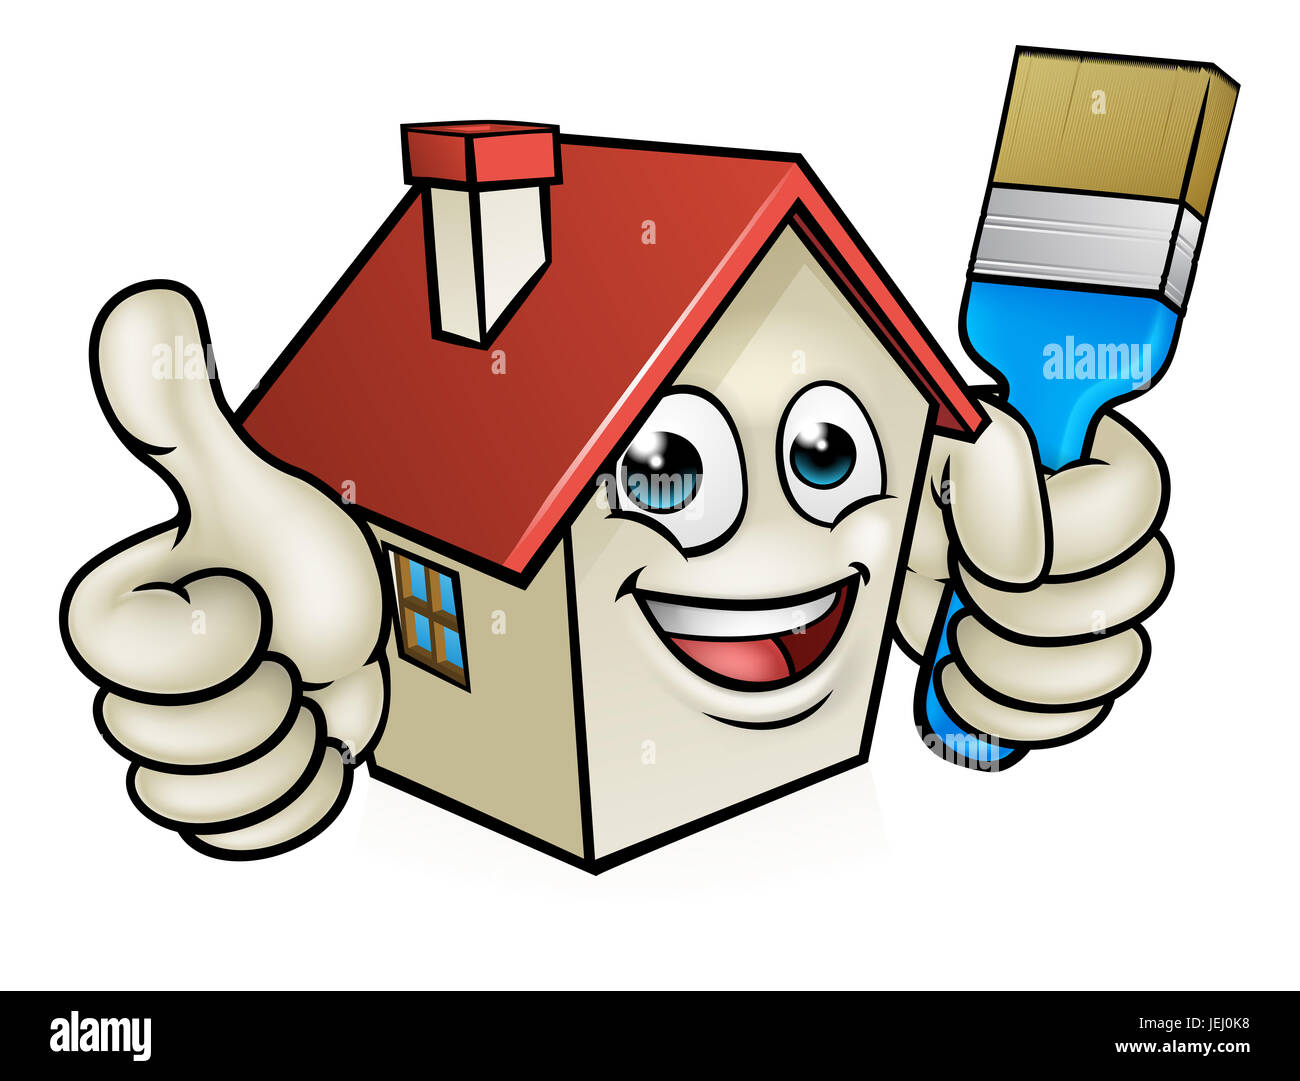 A Happy Cartoon House Man Mascot Character Holding Paint Brush And Stock Photo Alamy